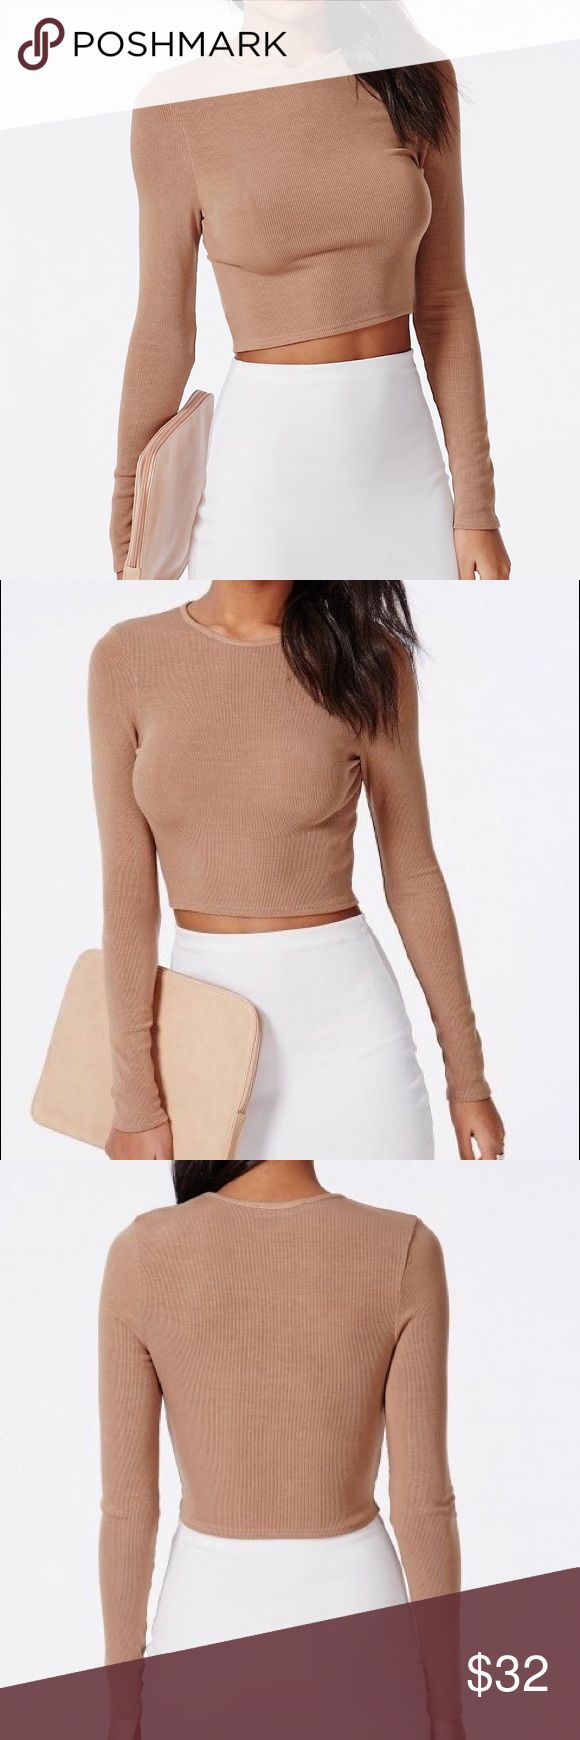 Missguided Ribbed Long Sleeve Camel Crop Top New with tags! work this 90's inspired piece into your wardrobe for a touch of urban styling. this long sleeve crop top in ribbed jersey will be your new fave go-to piece with it's versatile style and fresh camel finish. team with ripped jeans and skater pumps for a relaxed finish. Missguided Tops